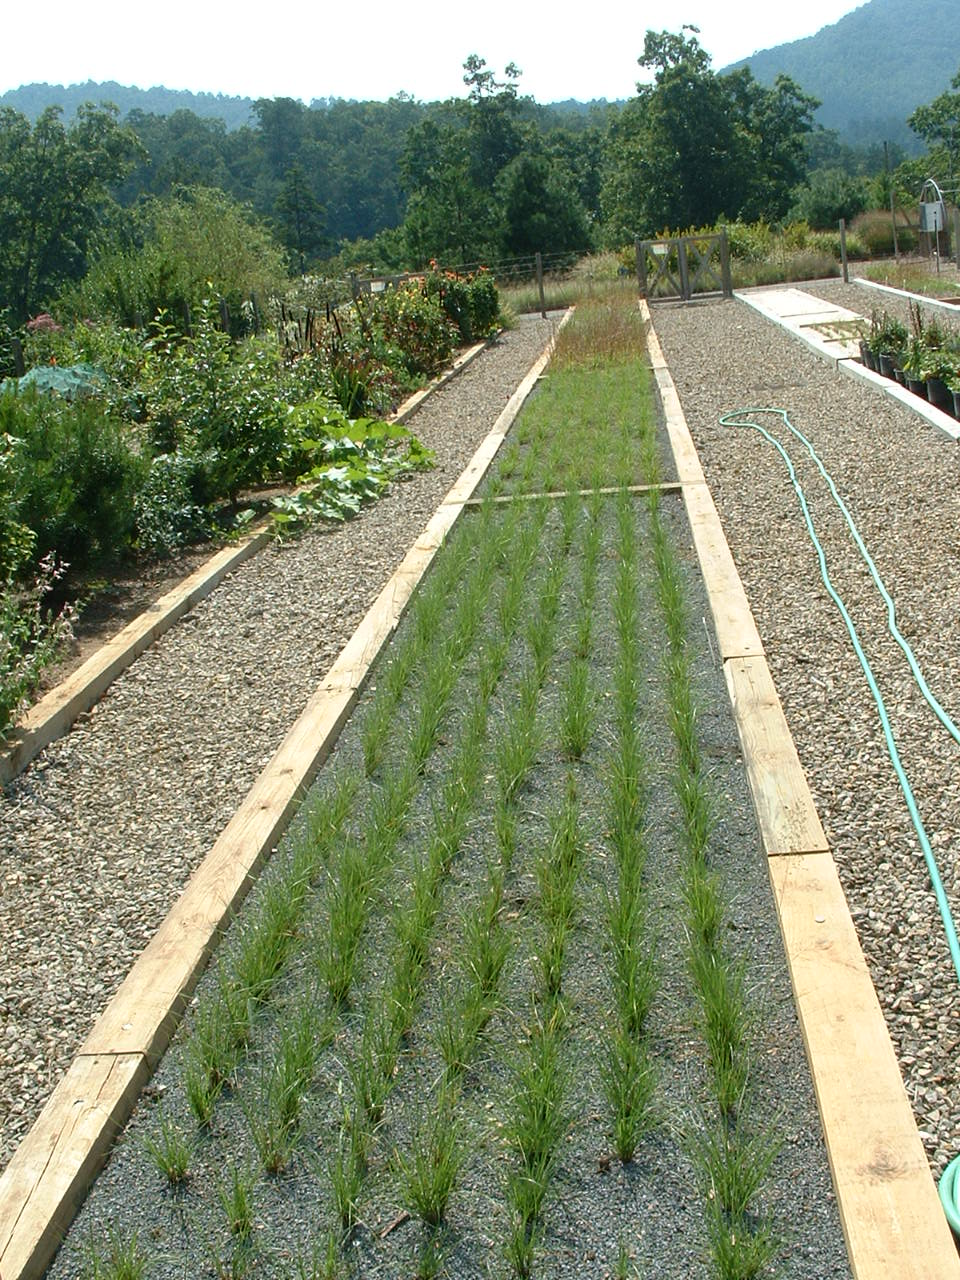 3 Bioretention 9-1-05 026.jpg